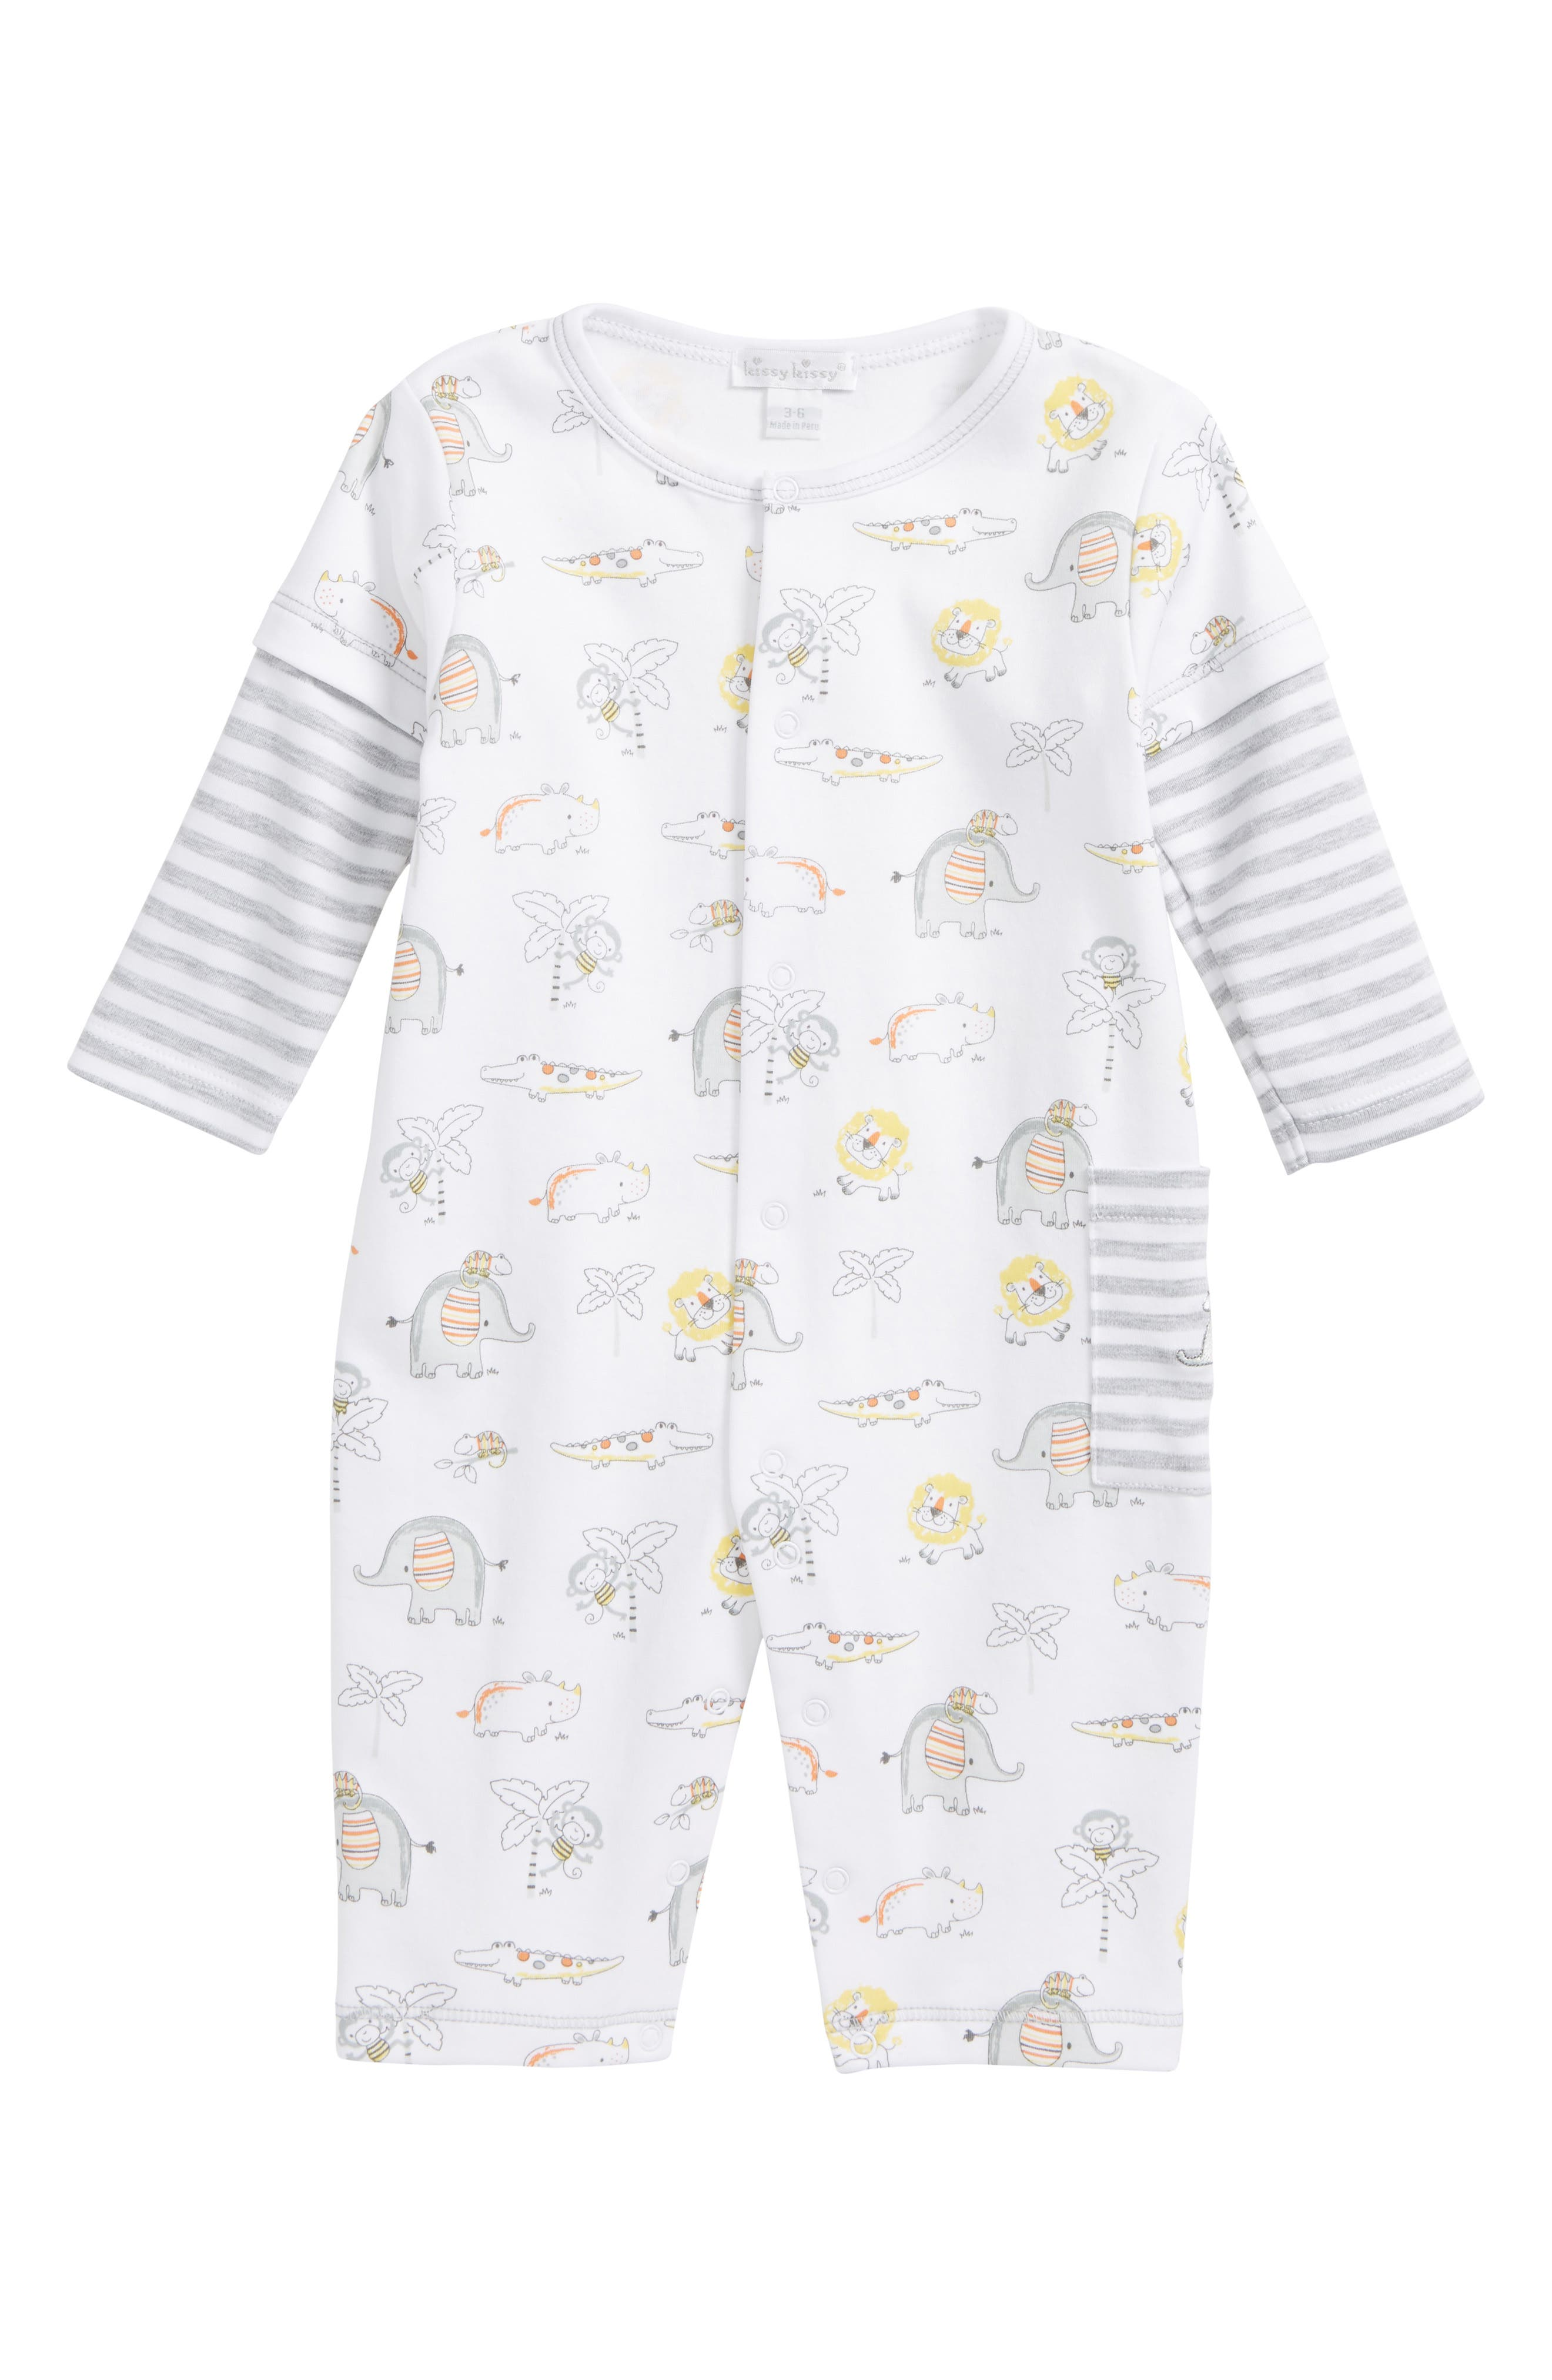 Baby Jamboree Clothing Store Newest and Cutest Baby Clothing